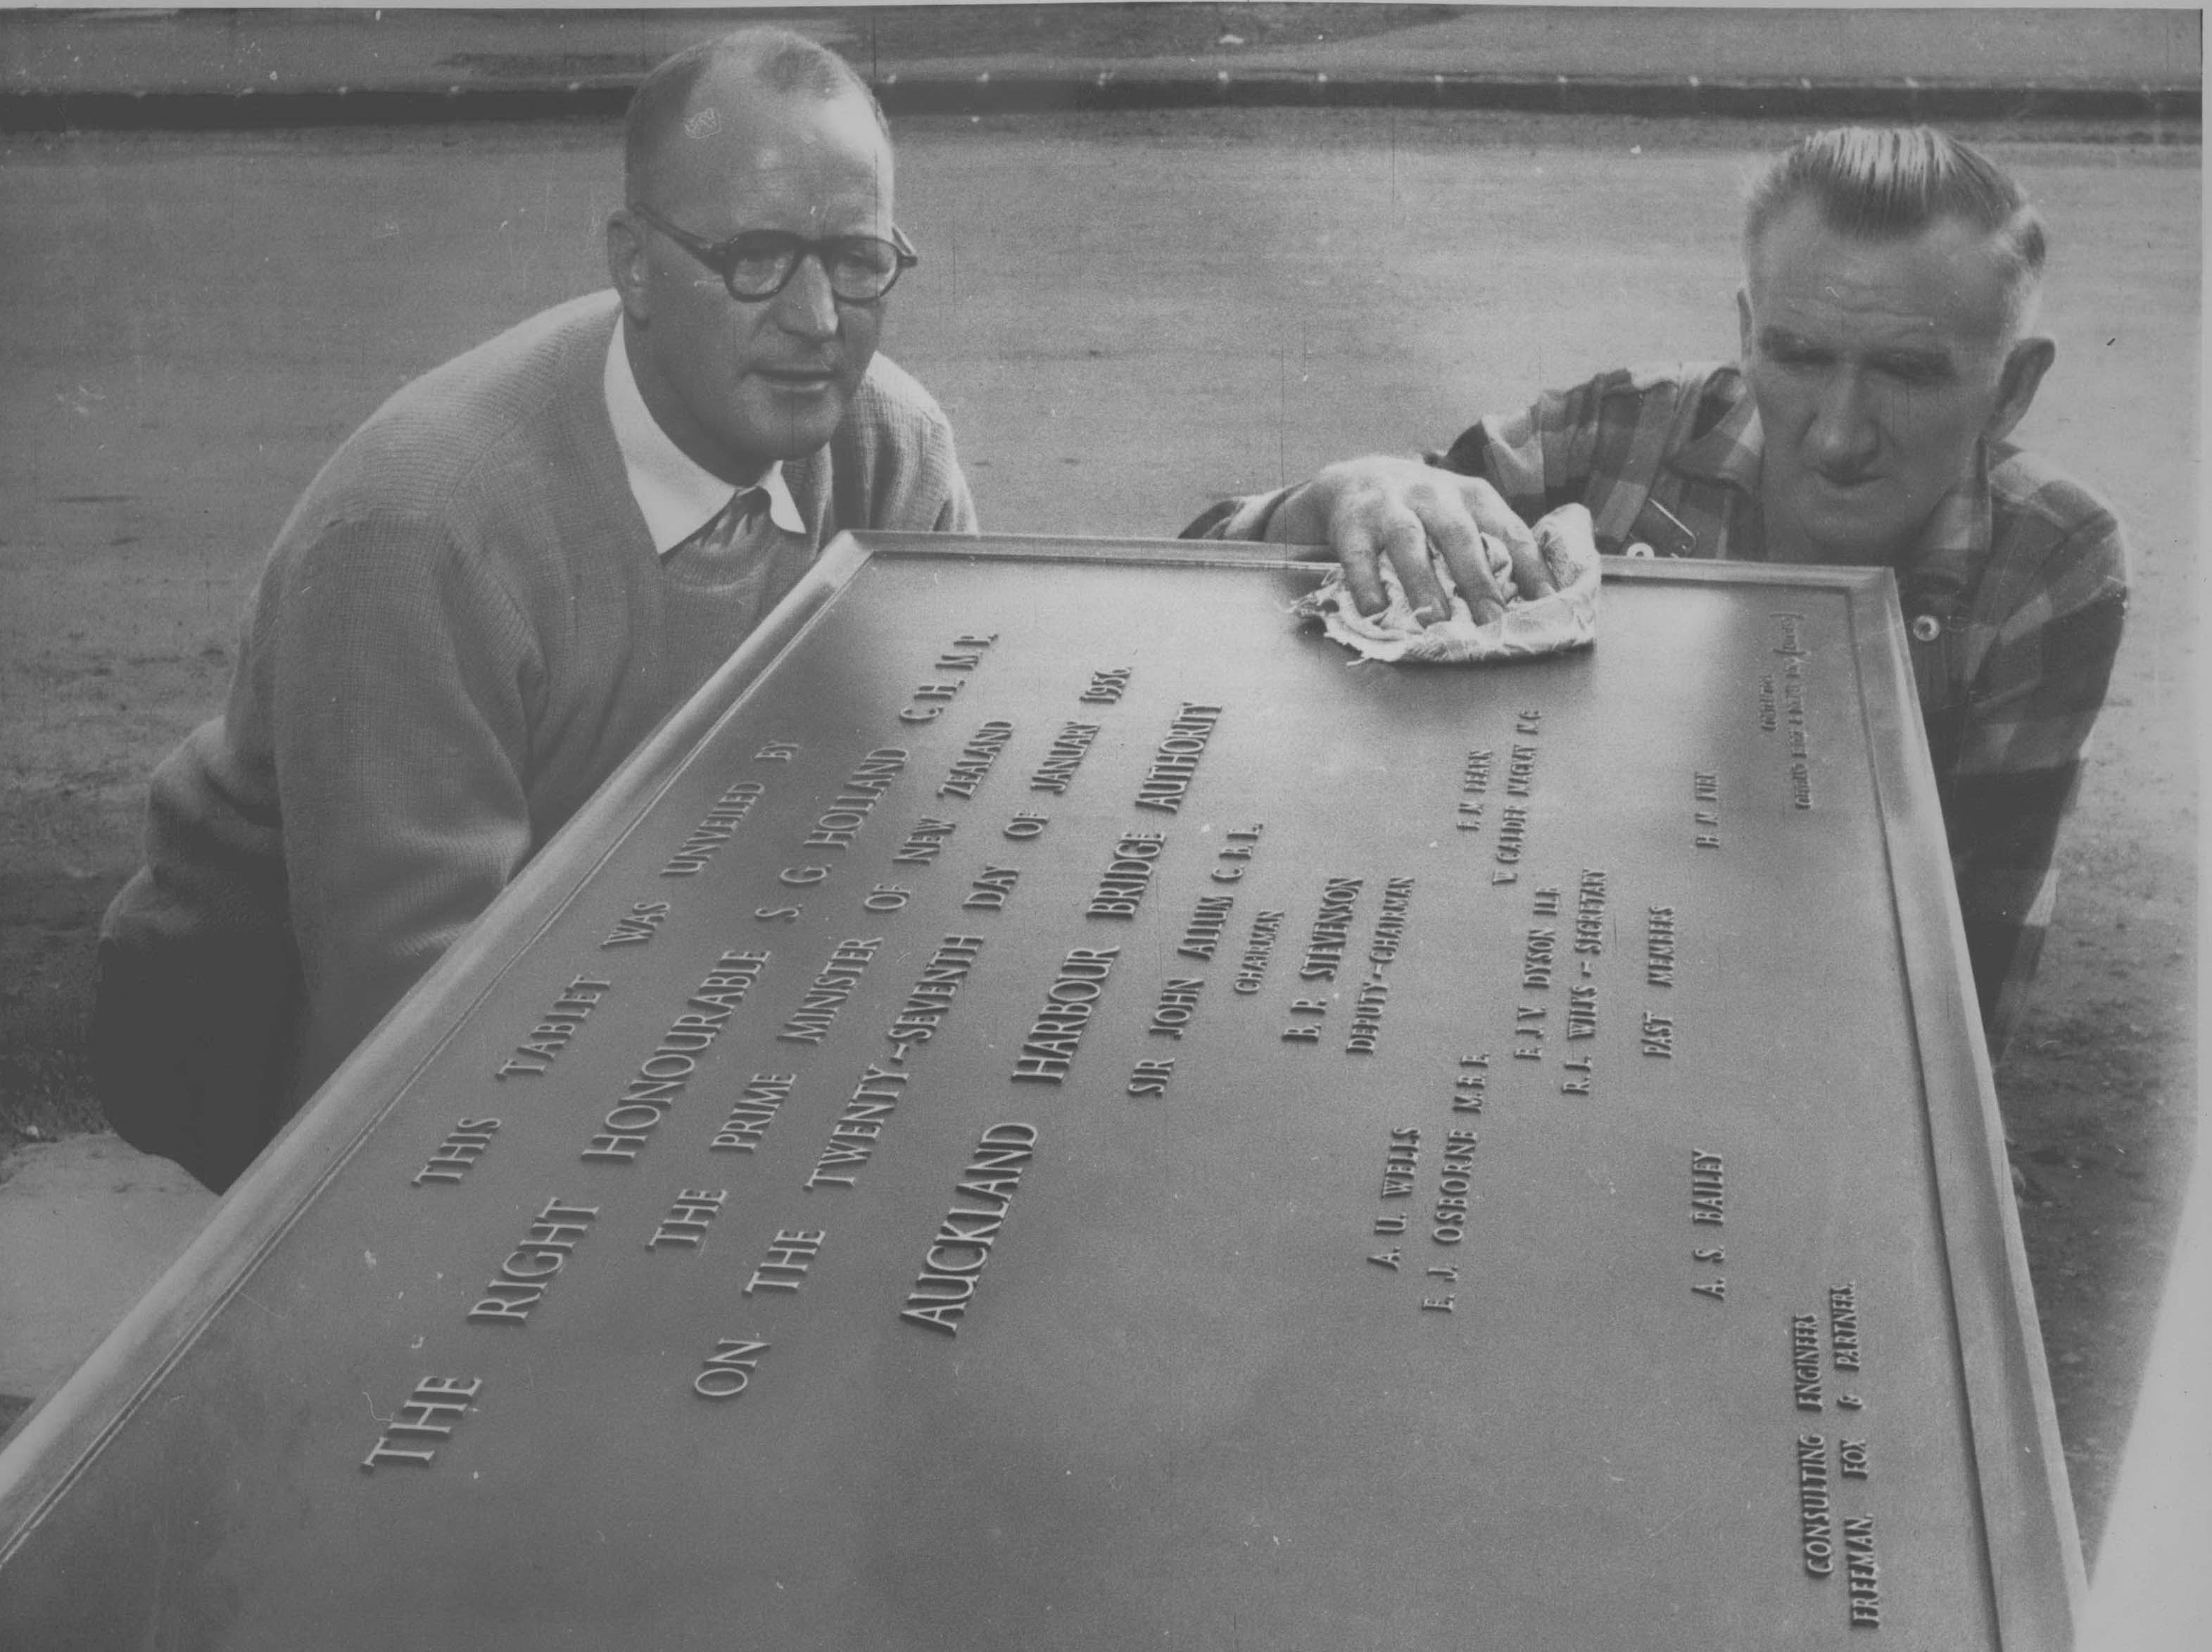 Two men polishing the plaque commemorating the foundation stone laying at the bridge.